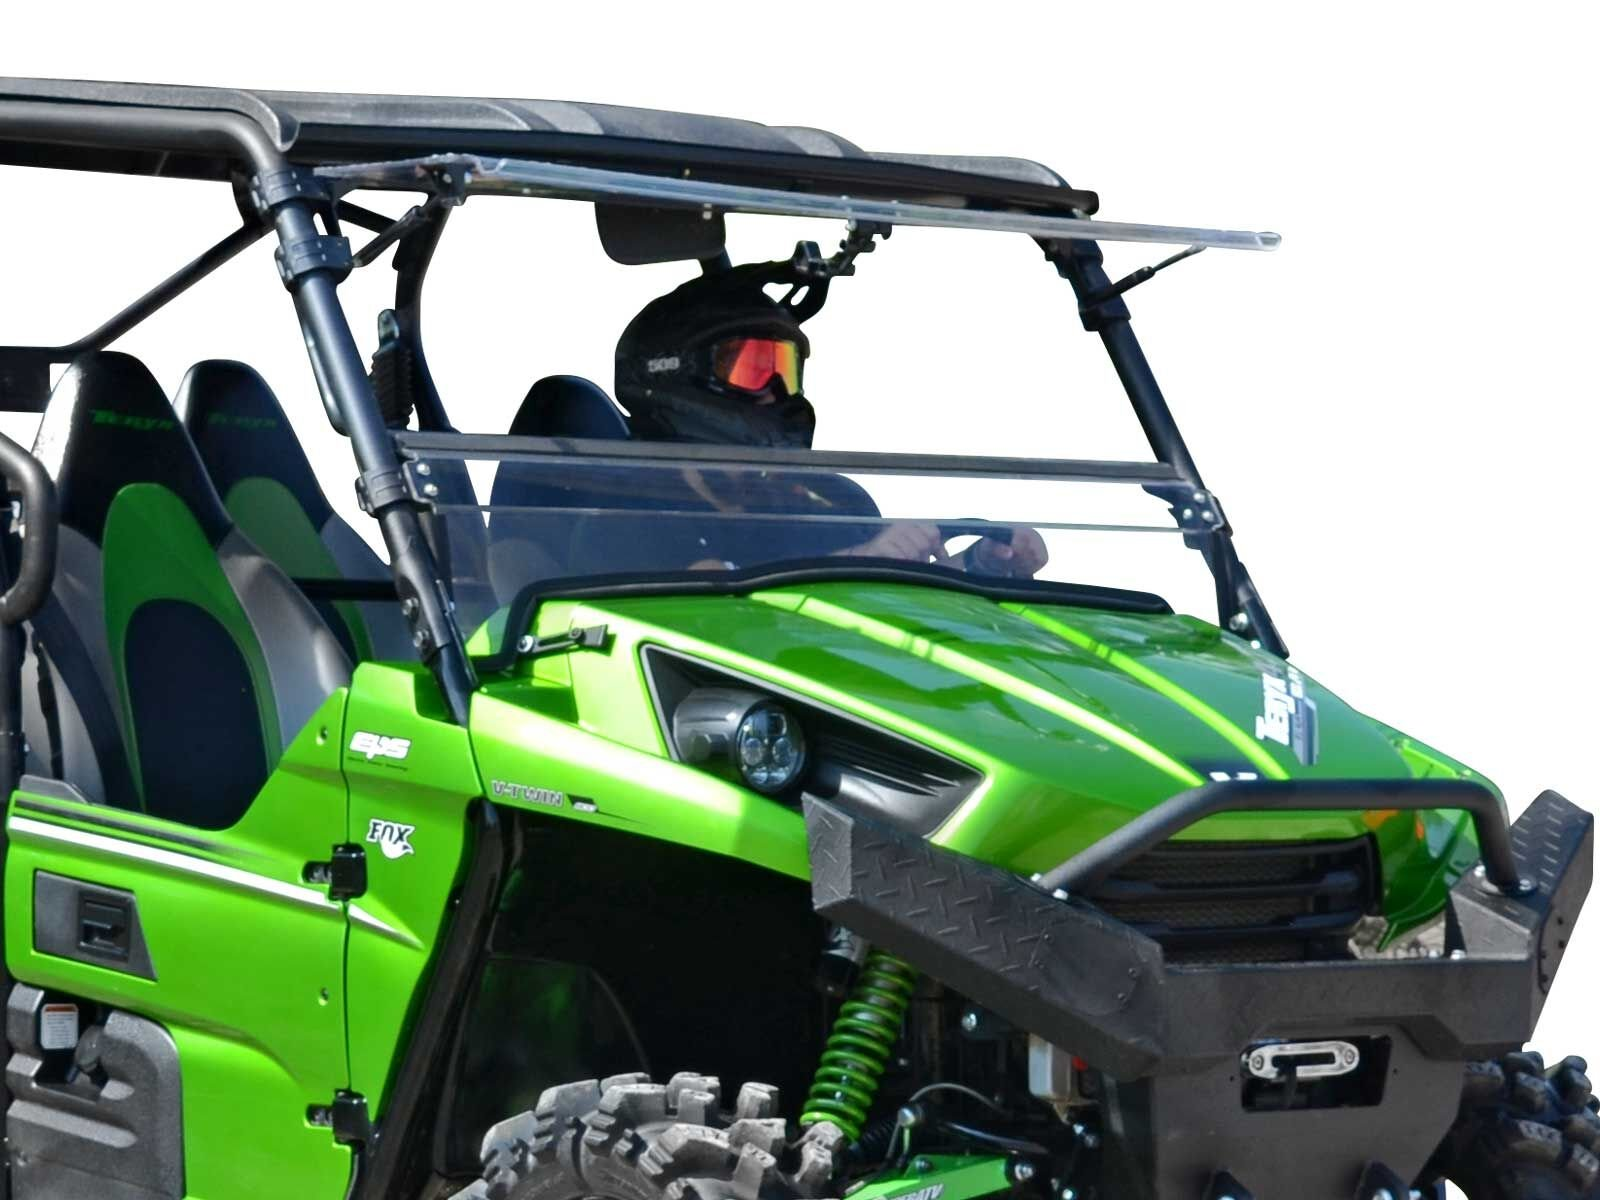 SuperATV Heavy Duty Scratch Resistant Flip Windshield for Kawasaki Teryx 750 4/800 / 800 4 (2012-2015) - Can be Set to Open, Vented, or Closed - Easy to Install! by SuperATV.com